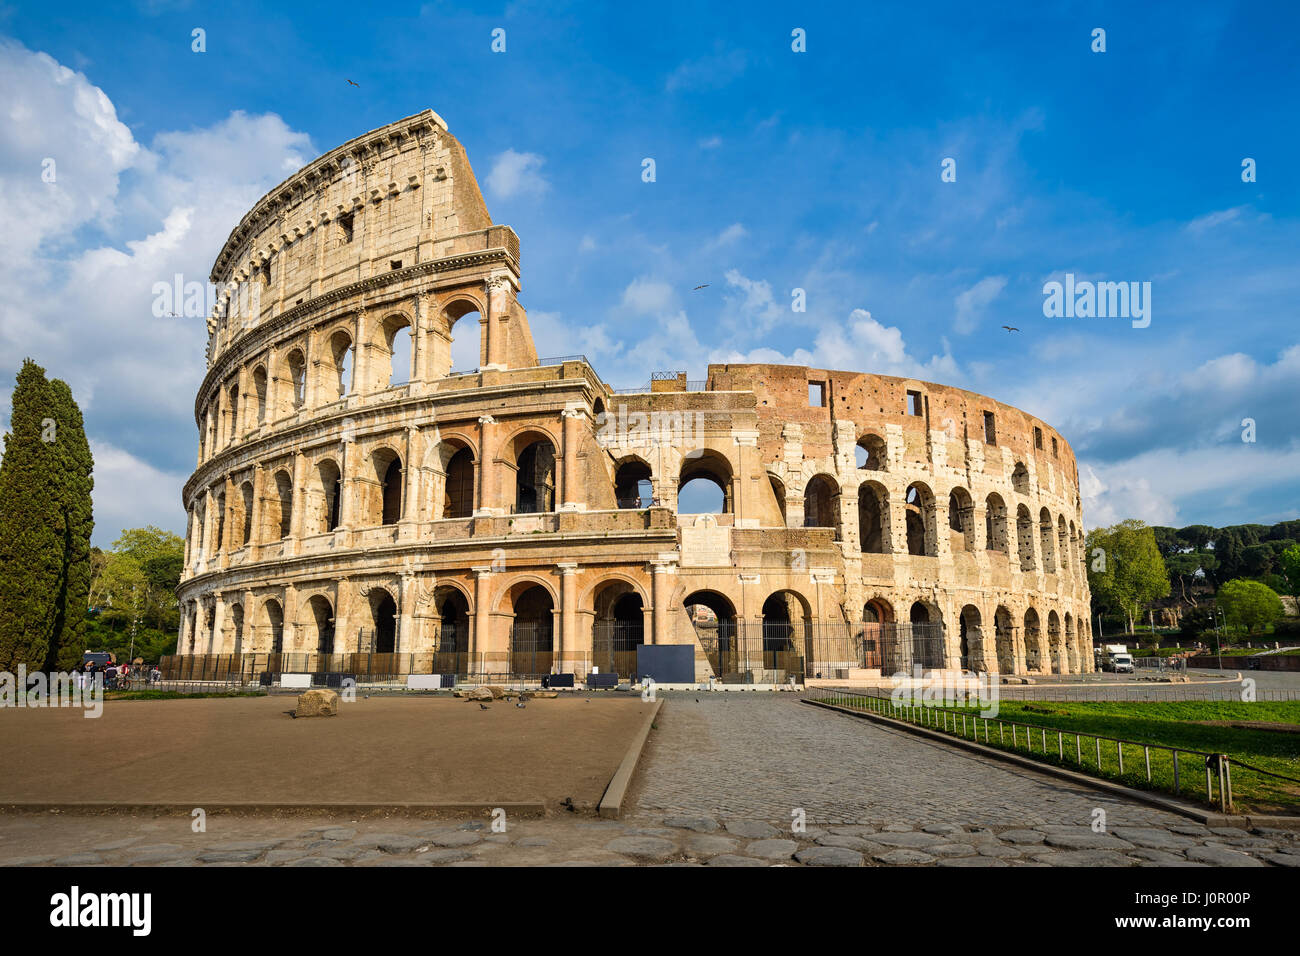 Colosseum in Rome, Italy on a sunny day - Stock Image